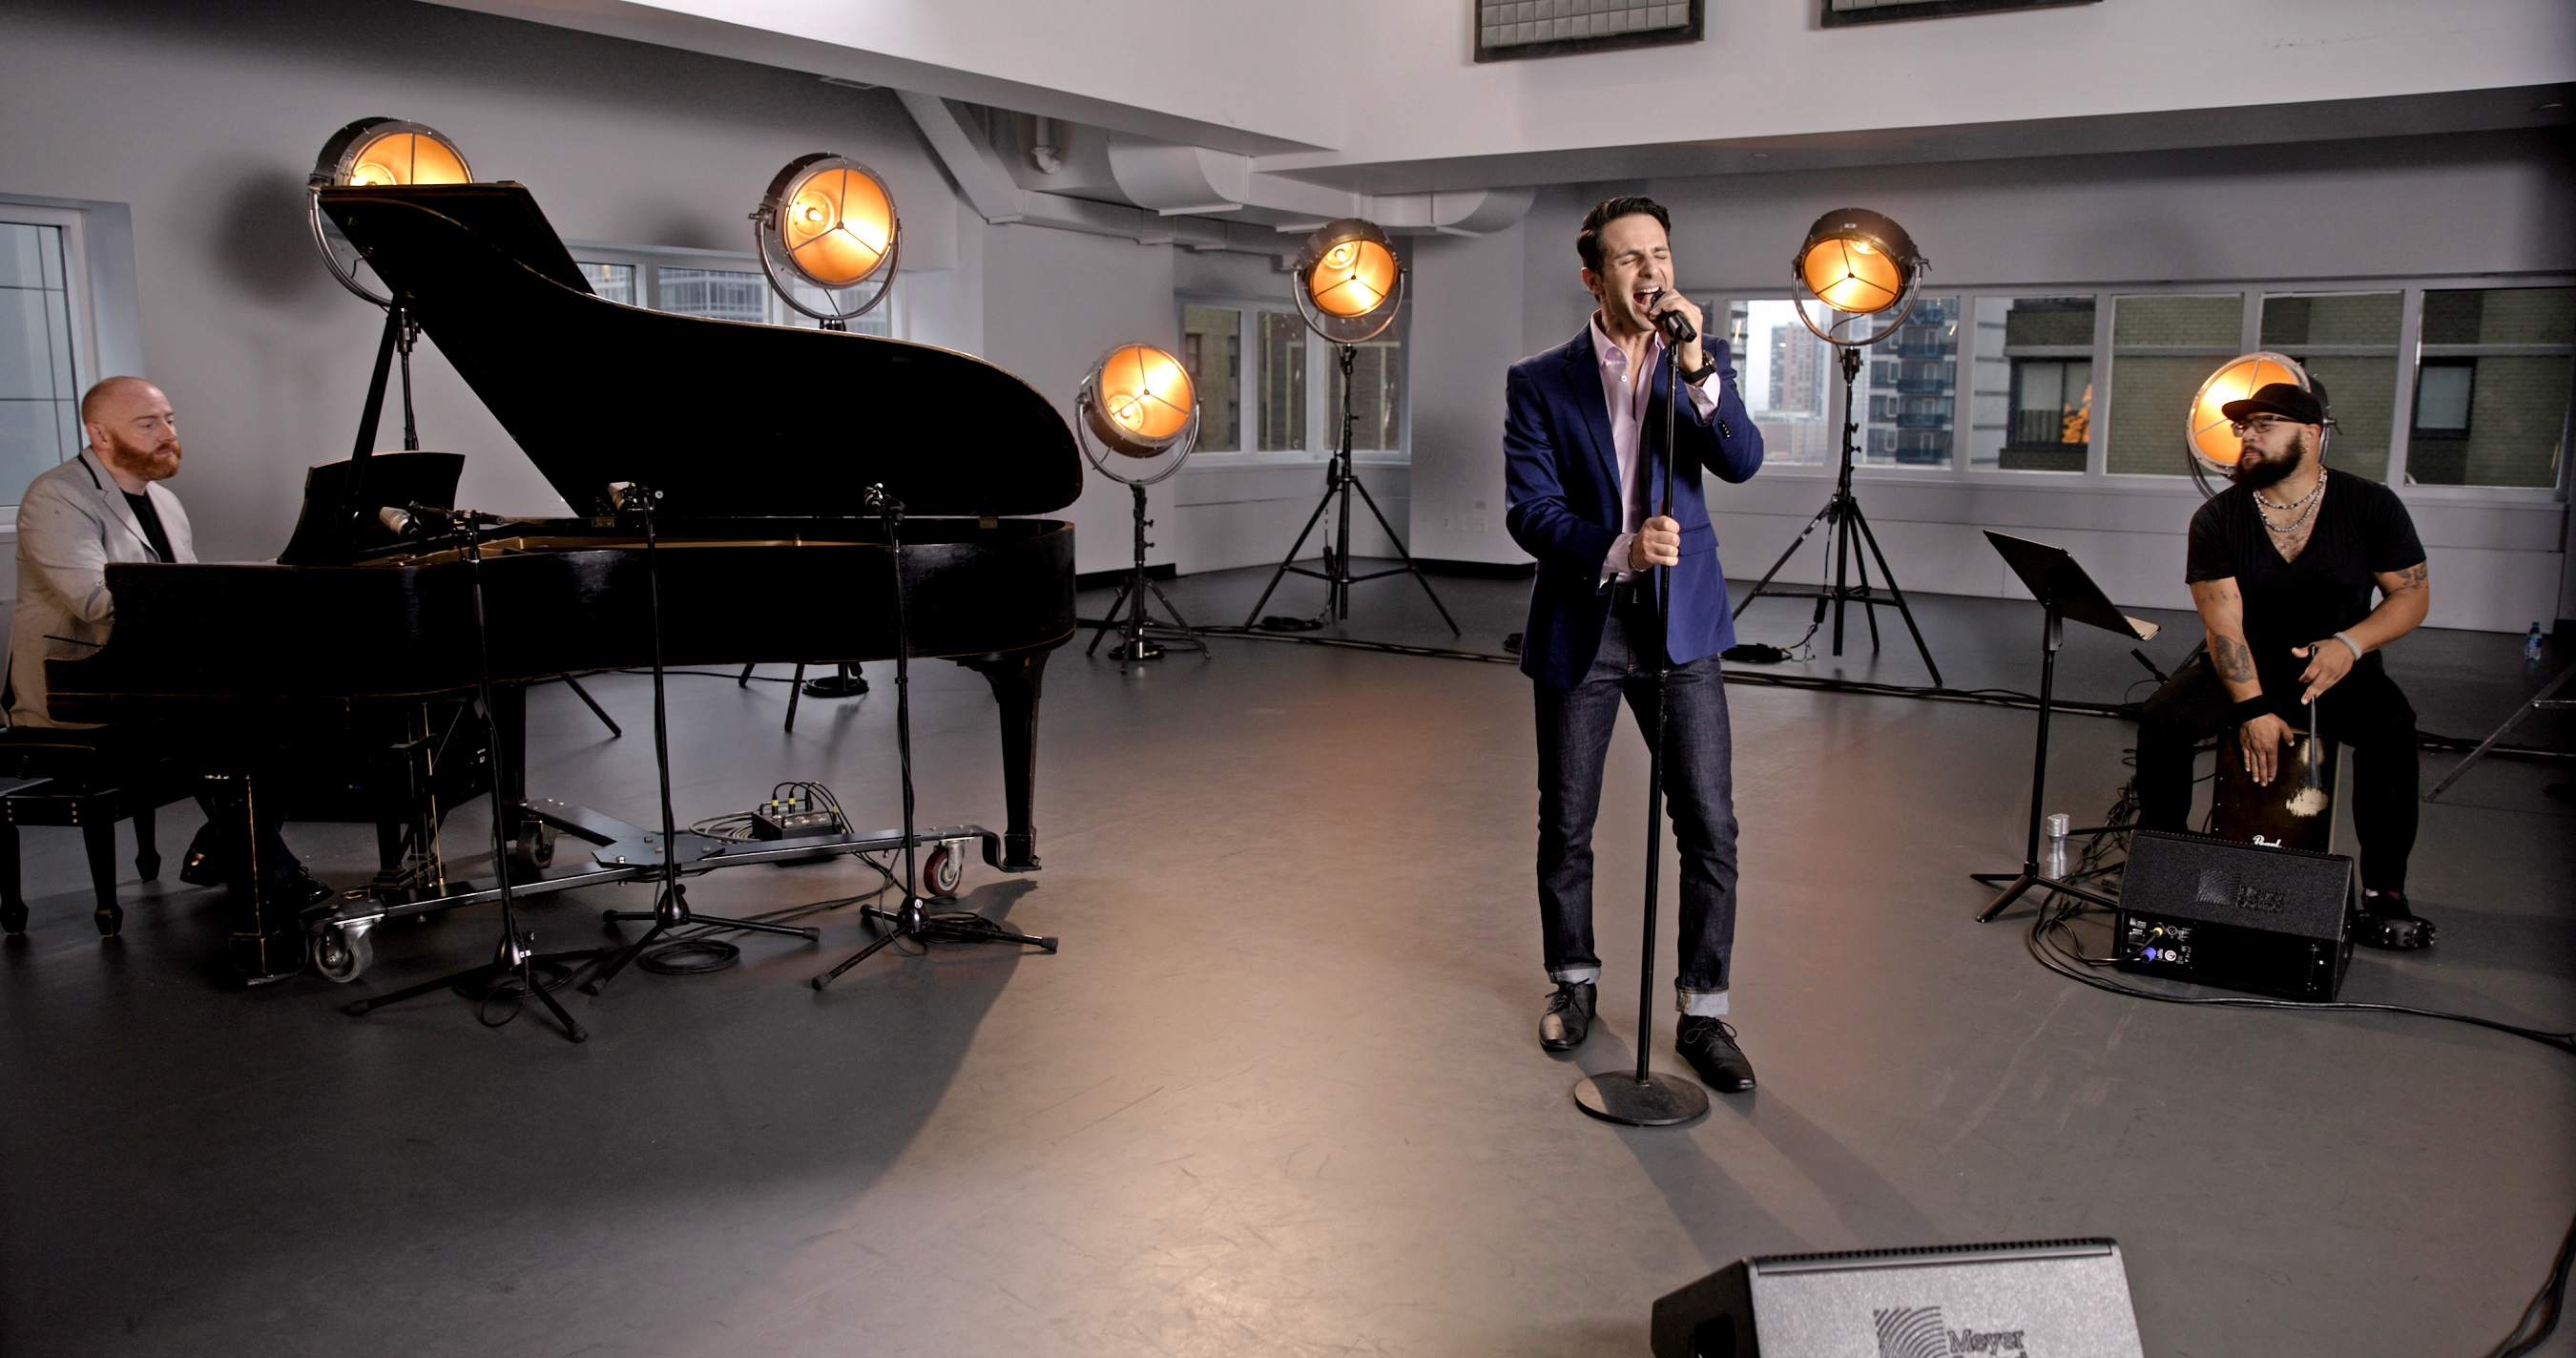 """Norwegian Cruise Line presents the second """"EMBARK NCL Spotlight"""" episode, """"Live From Broadway,"""" on Dec. 17 at 9 p.m. ET with special performances, including Michael Fasano, singing """"Can't Take My Eyes Off of You"""" from the Tony Award®-winning musical """"Jersey Boys,"""" available on Norwegian Bliss."""